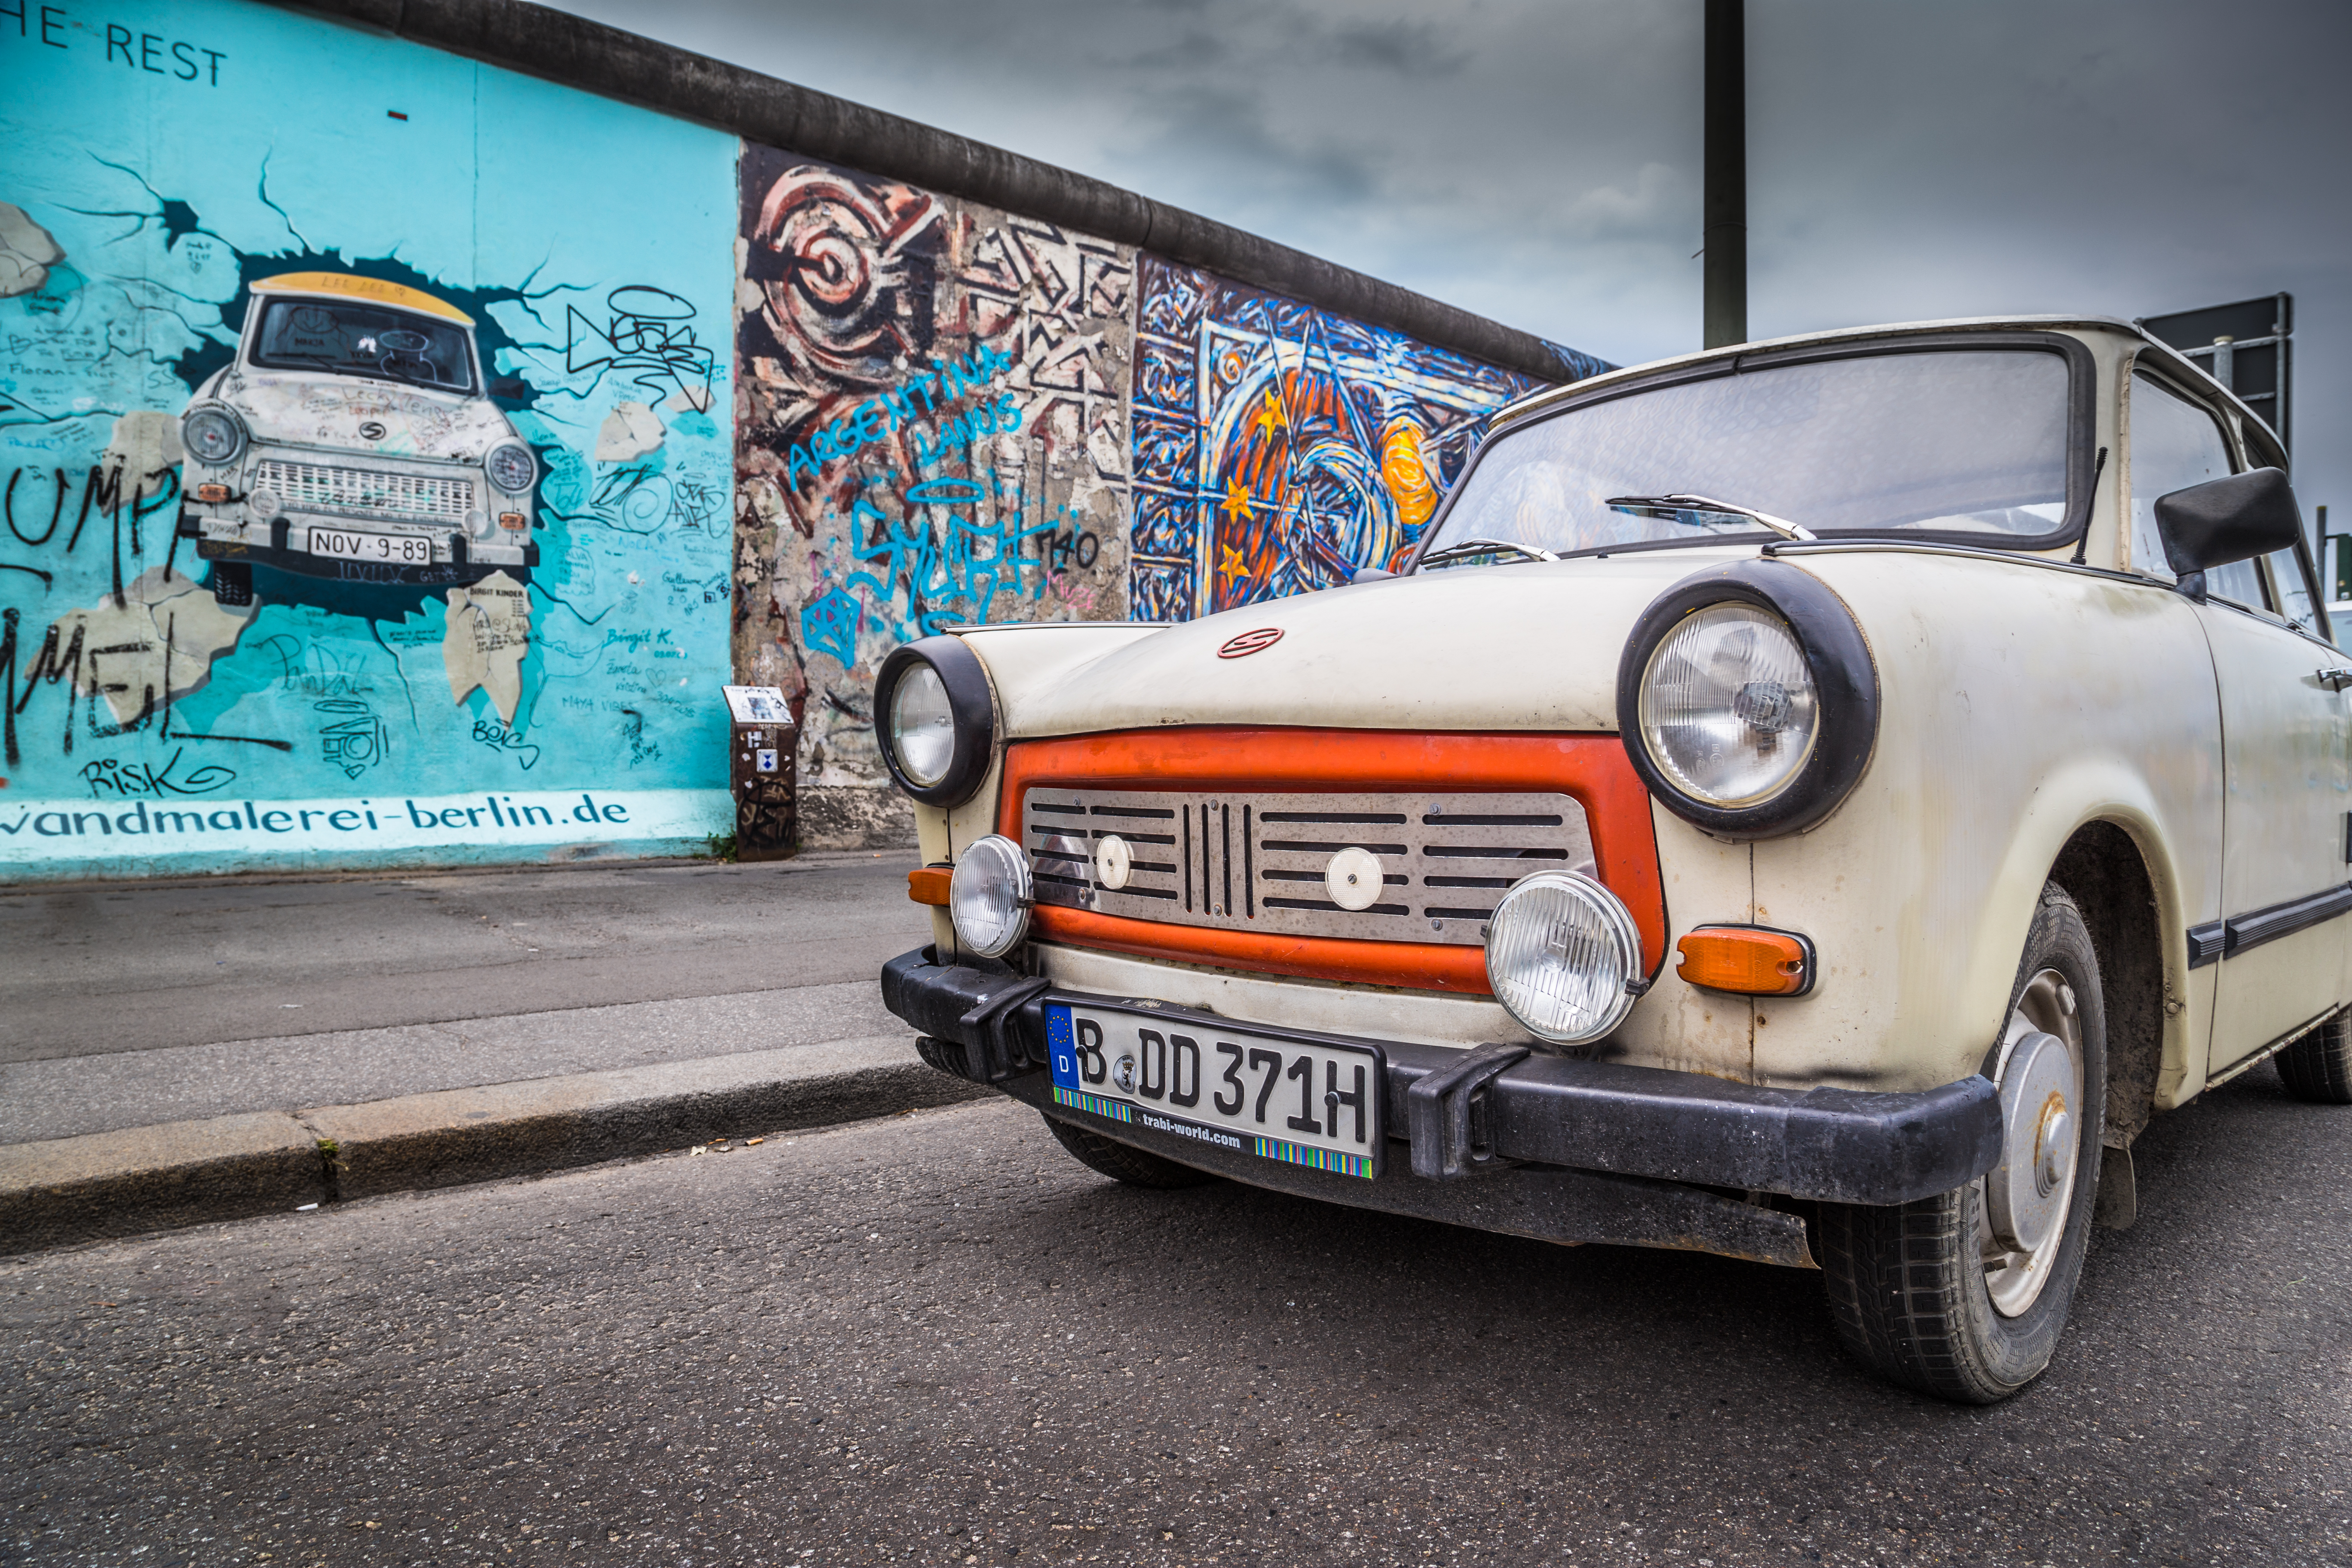 A Trabant by the Berlin Wall